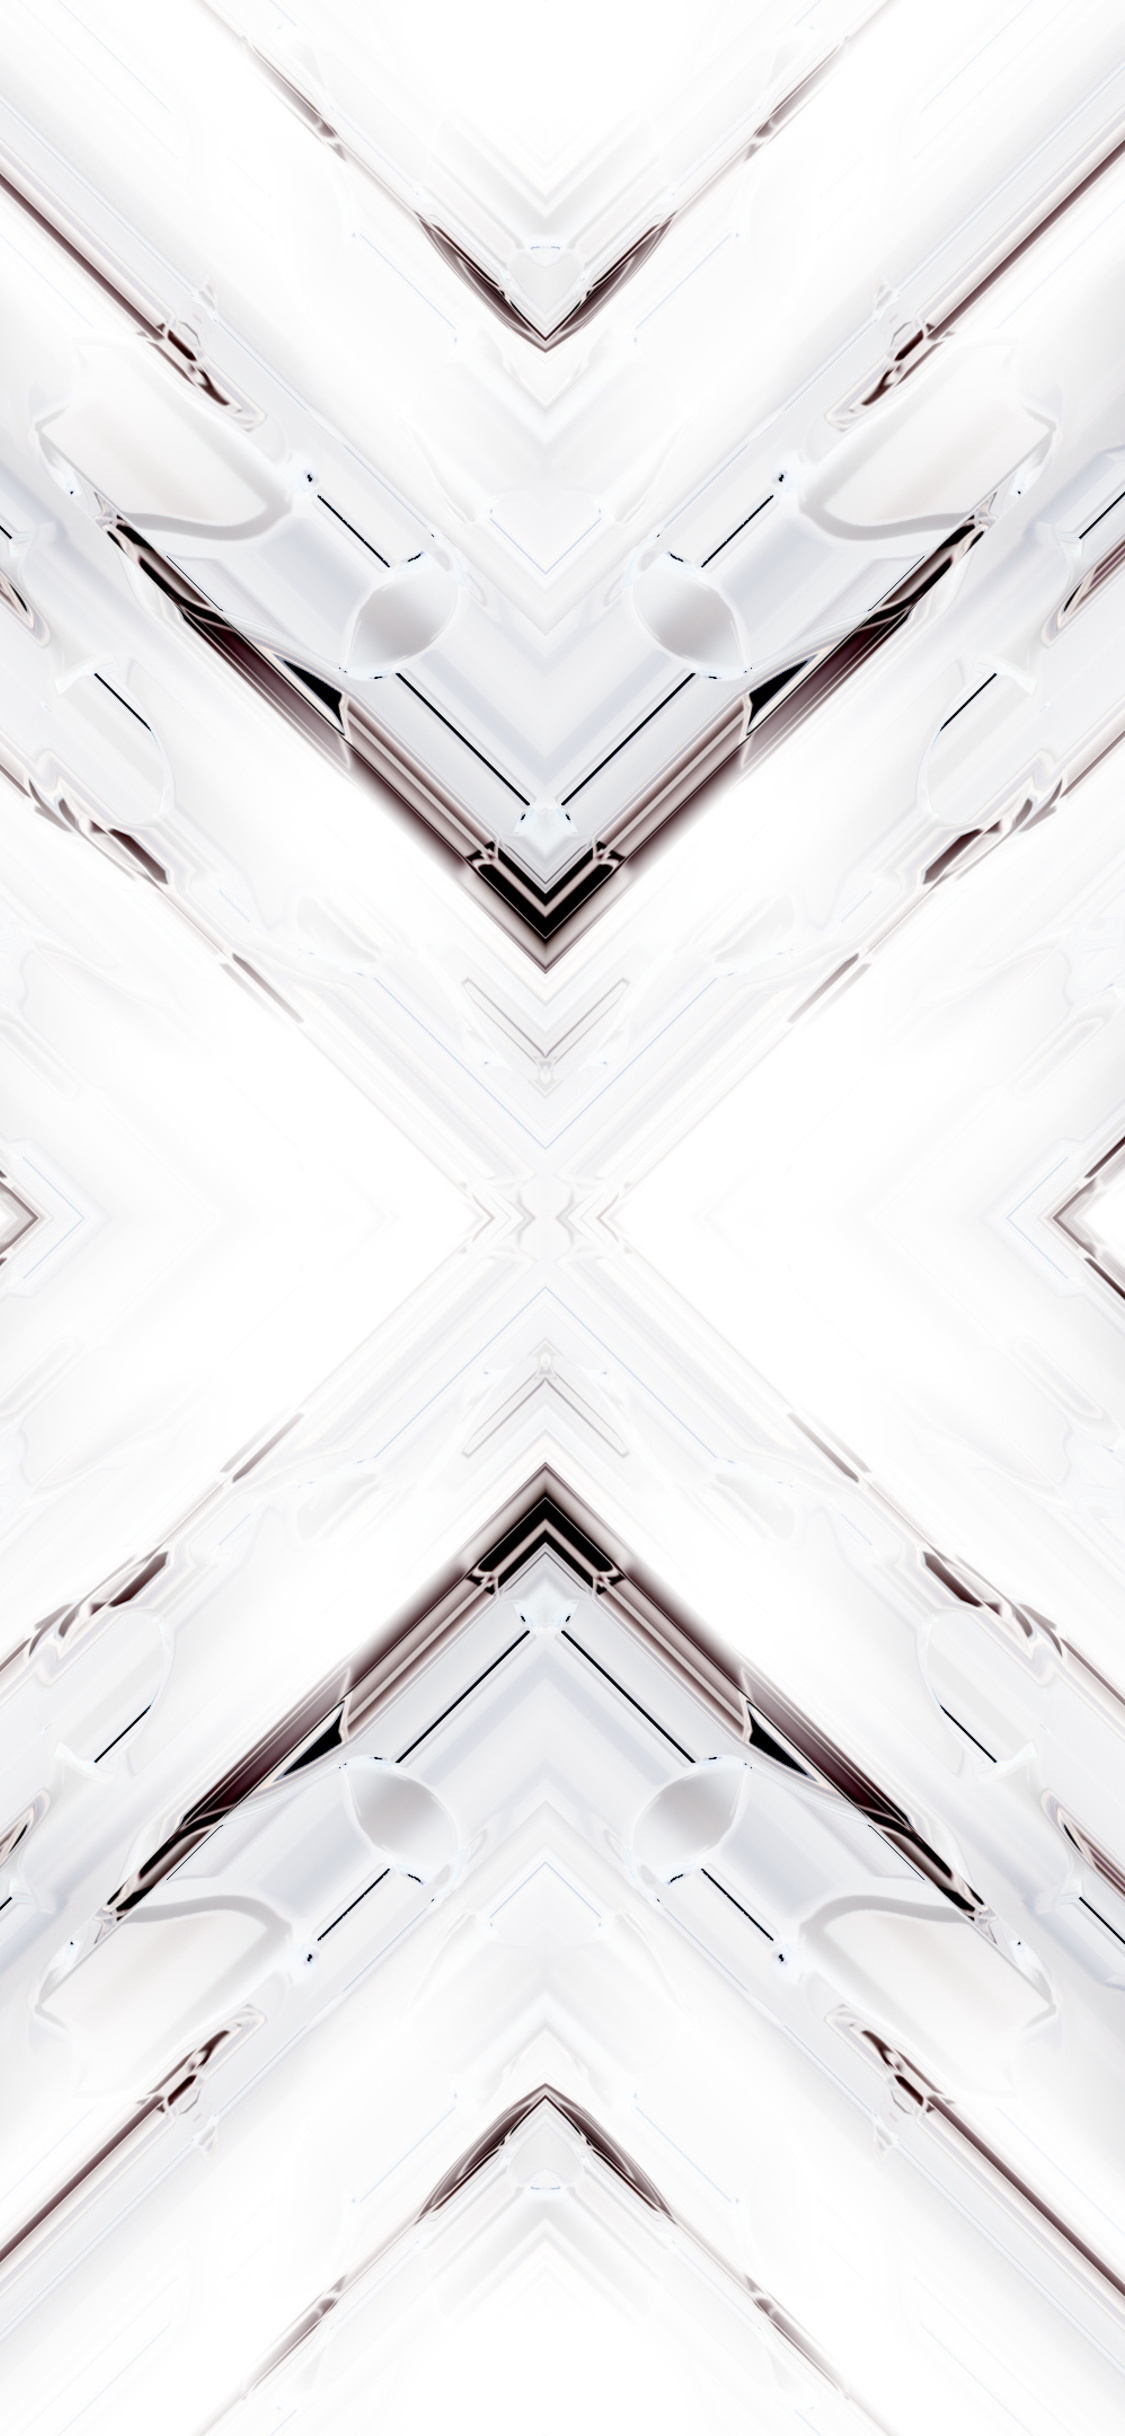 1125x2436 White Render Abstract Art 4k Iphone Xsiphone 10